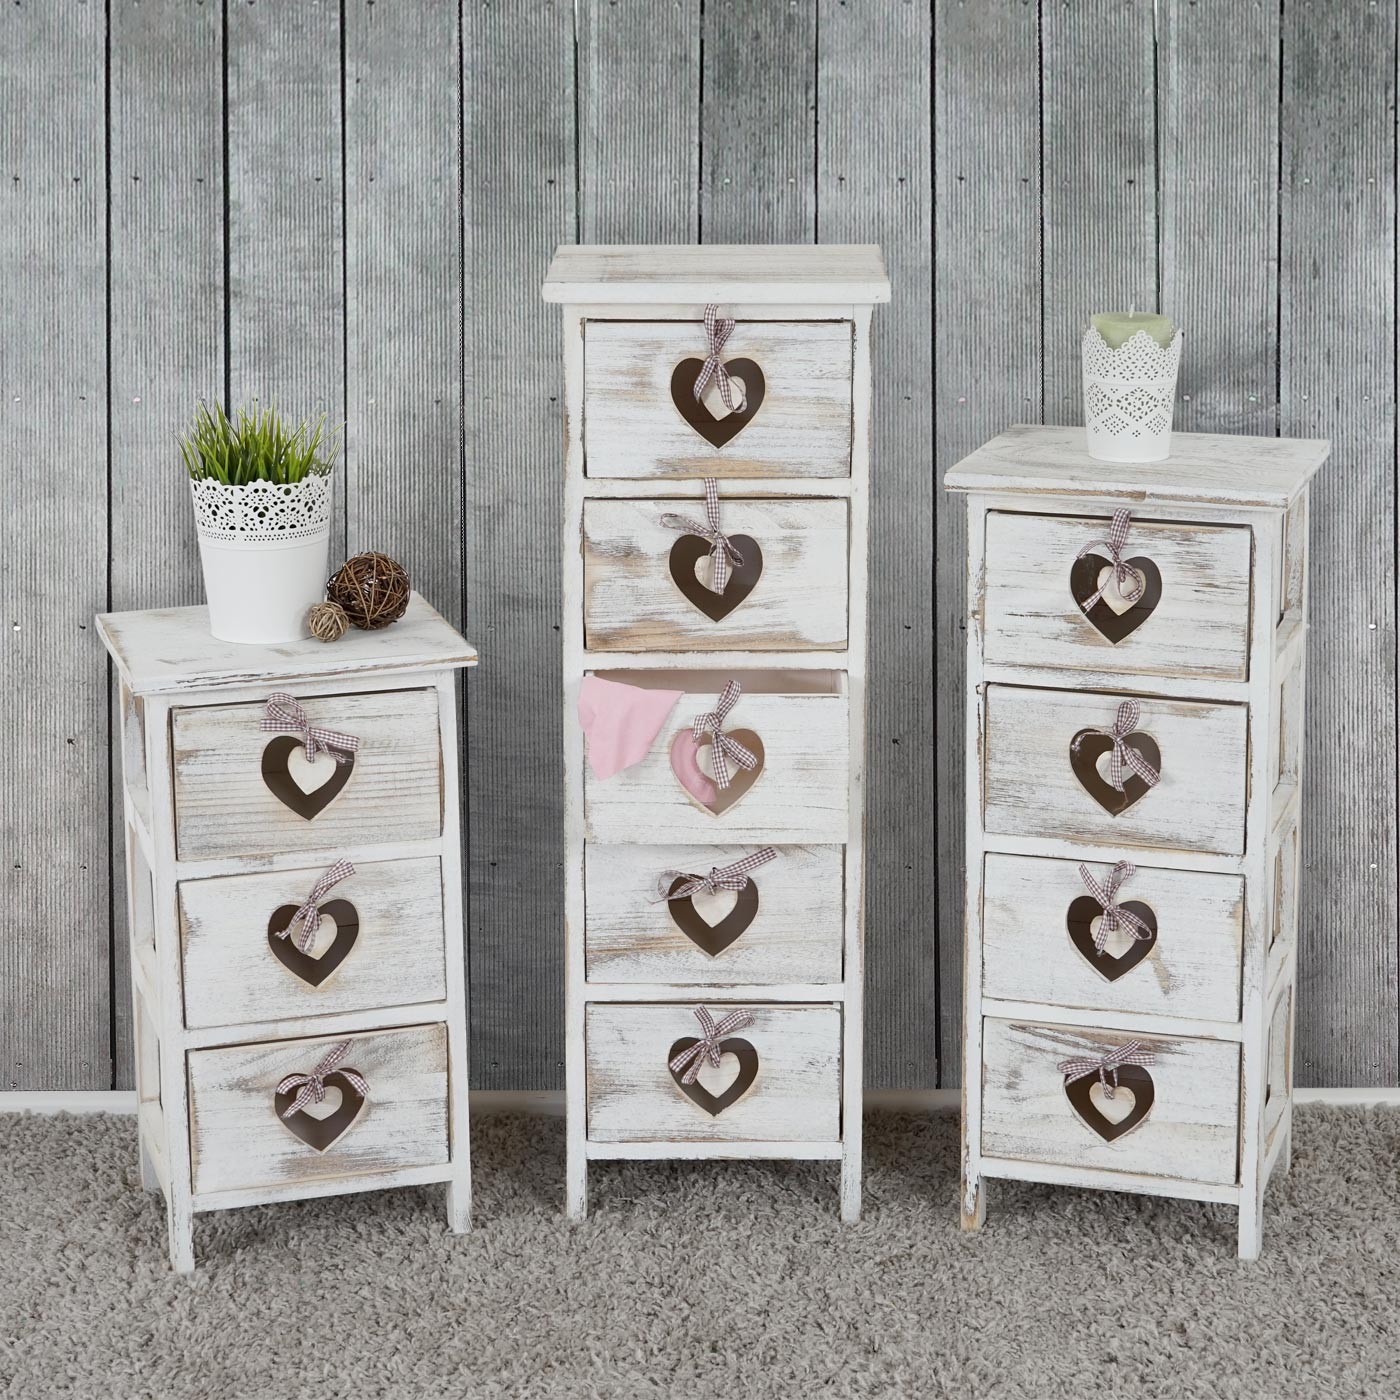 kommode forli schubladenkommode schrank shabby look. Black Bedroom Furniture Sets. Home Design Ideas